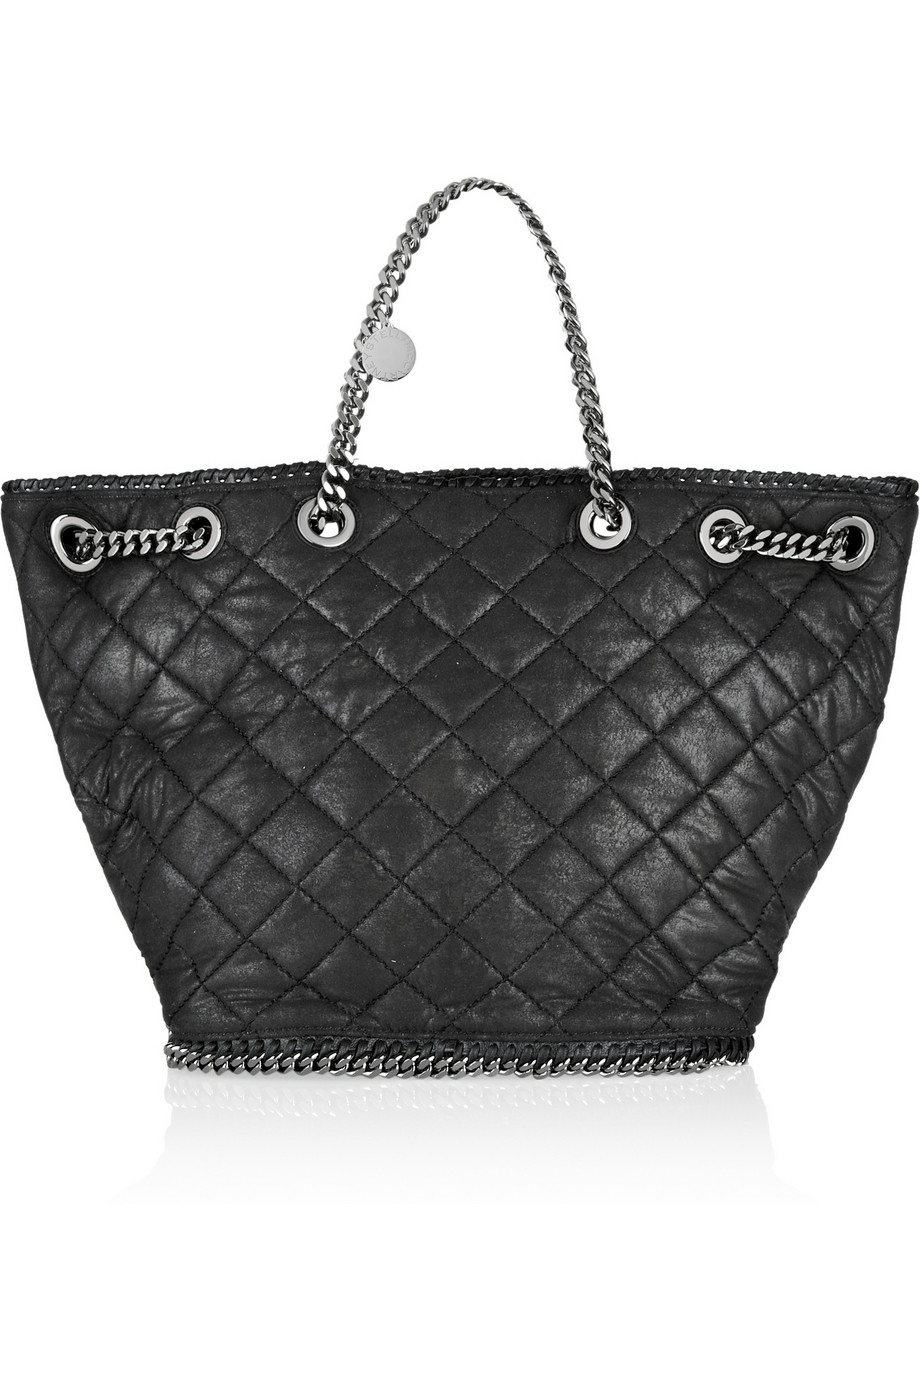 93d374b6a108 Lyst - Stella Mccartney Chain Embellished Quilted Faux Leather Tote ...